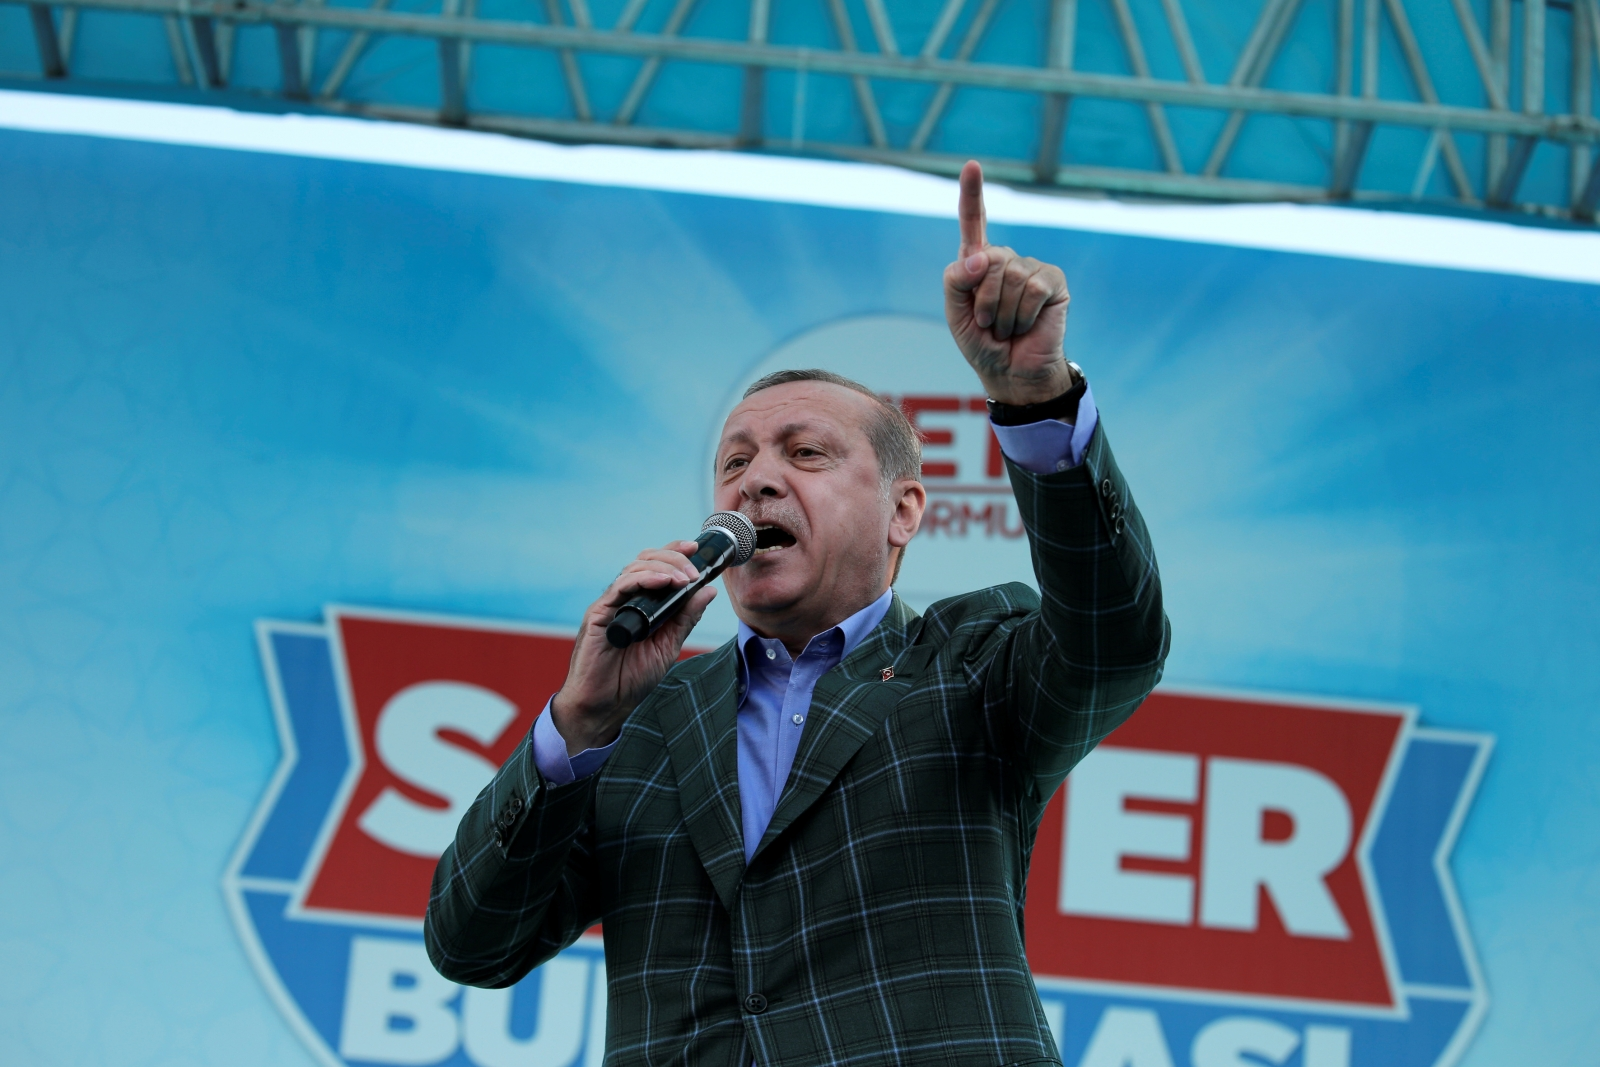 Monitors knock Turkey referendum; Erdogan denounces 'crusader mentality'